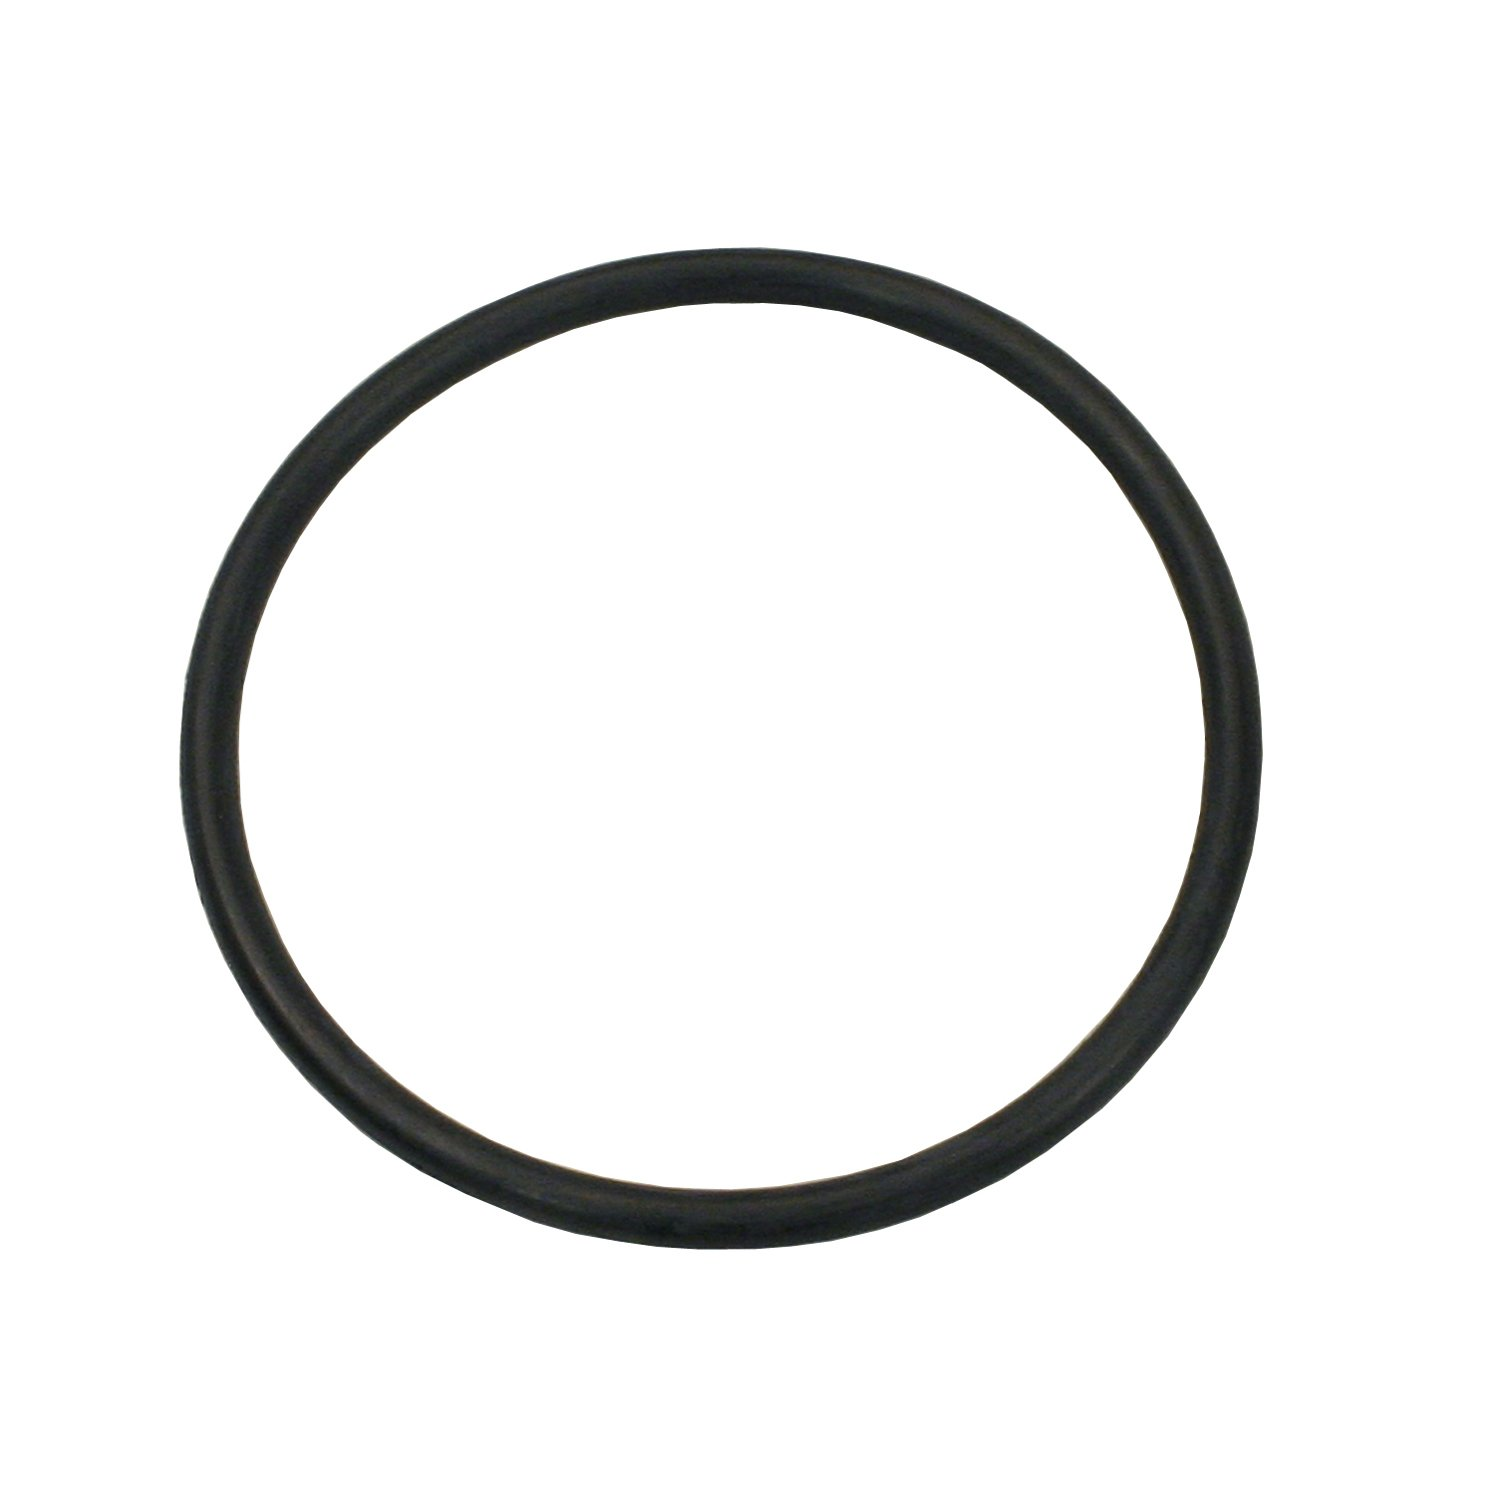 Beck Arnley 039-0029 Thermostat Gasket